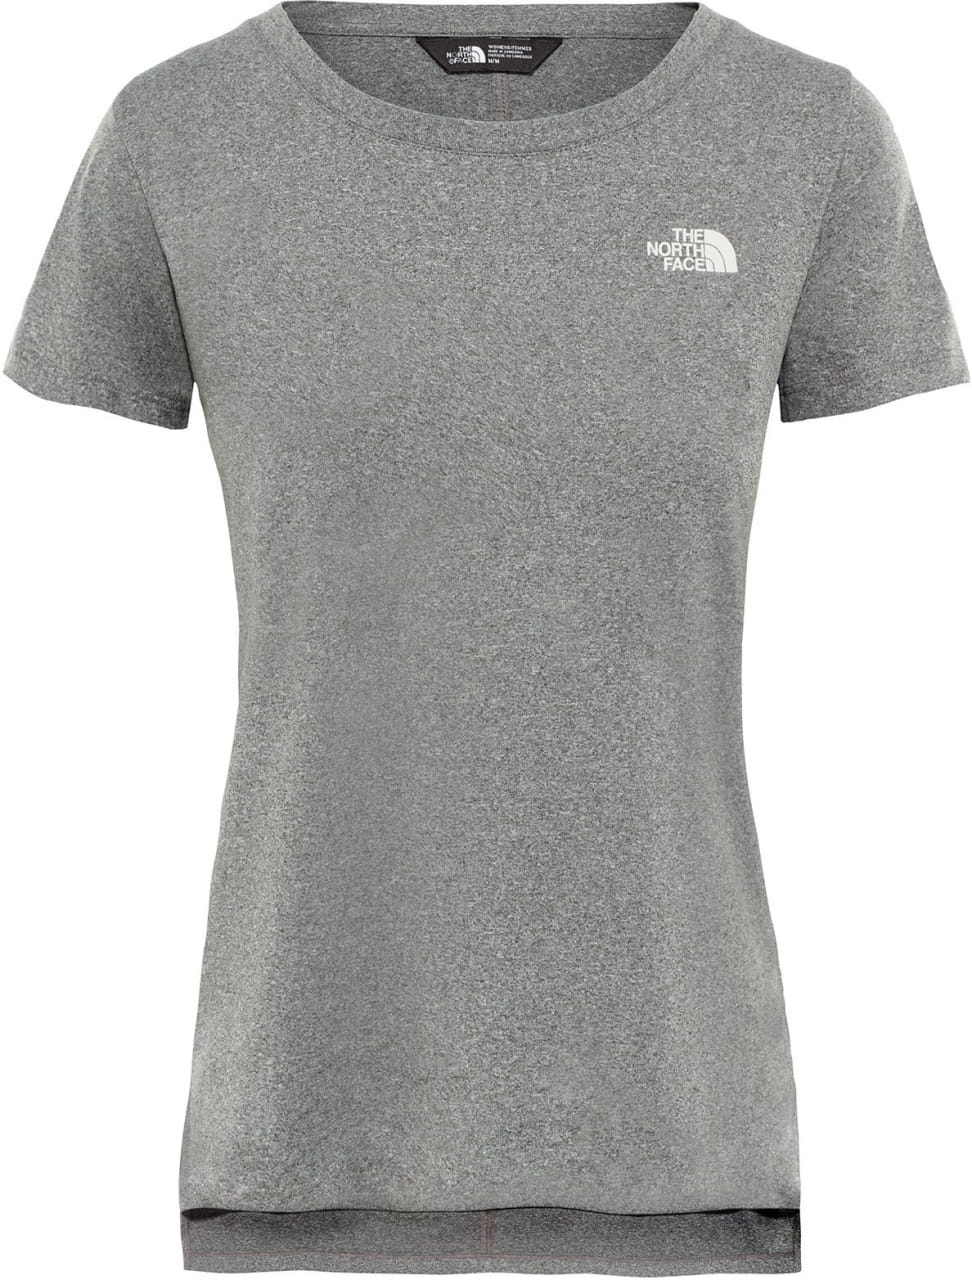 Dámské tričko The North Face Women's Quest T-Shirt